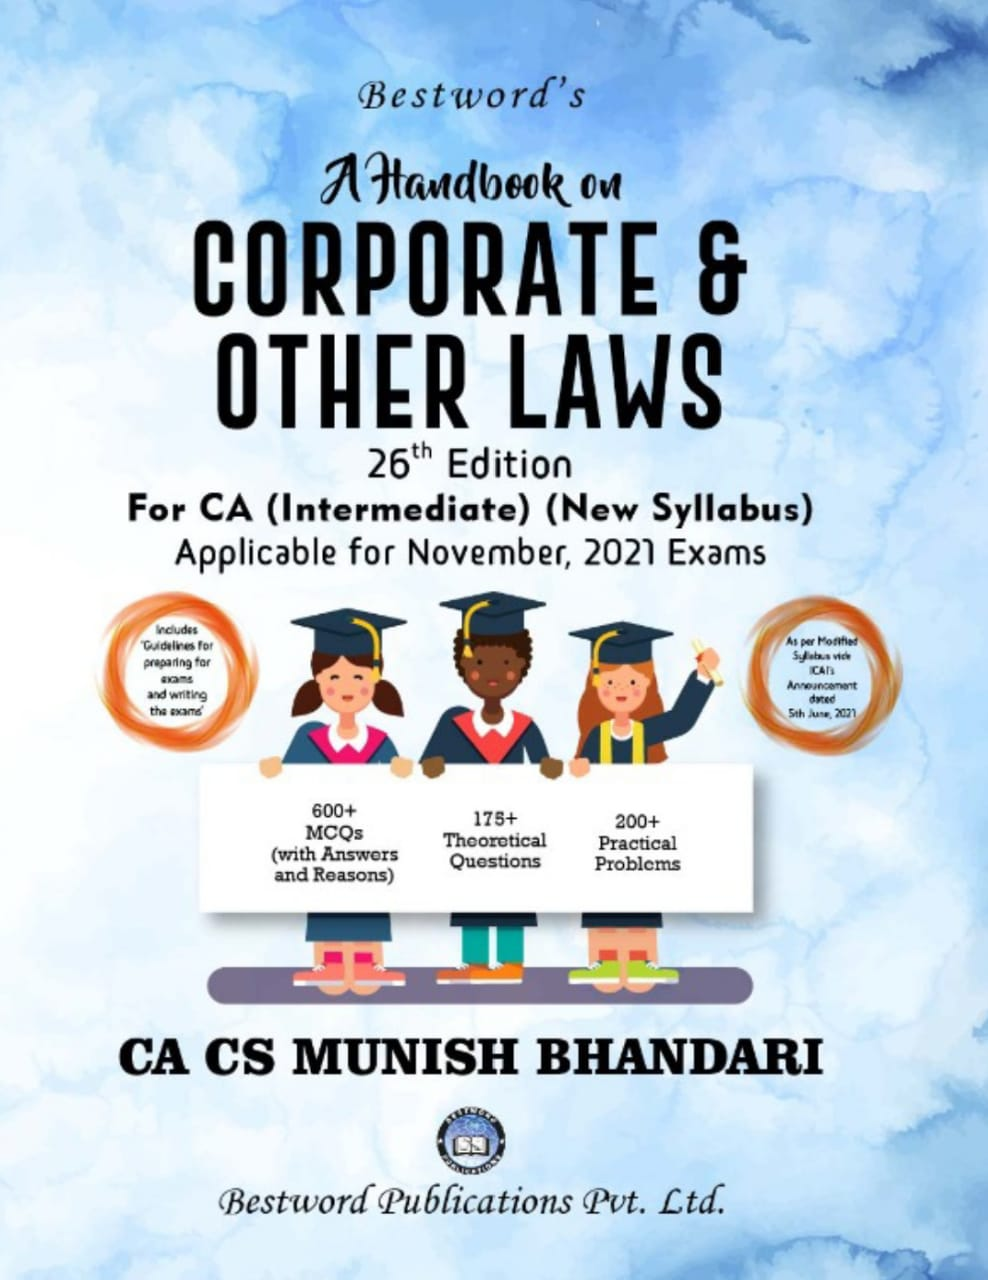 bestword's-a-handbook-on-corporate-and-other-laws---by-ca-cs-munish-bhandari---26th-edition---for-ca-(intermediate)-november,-2021-exams-(new-syllabus)